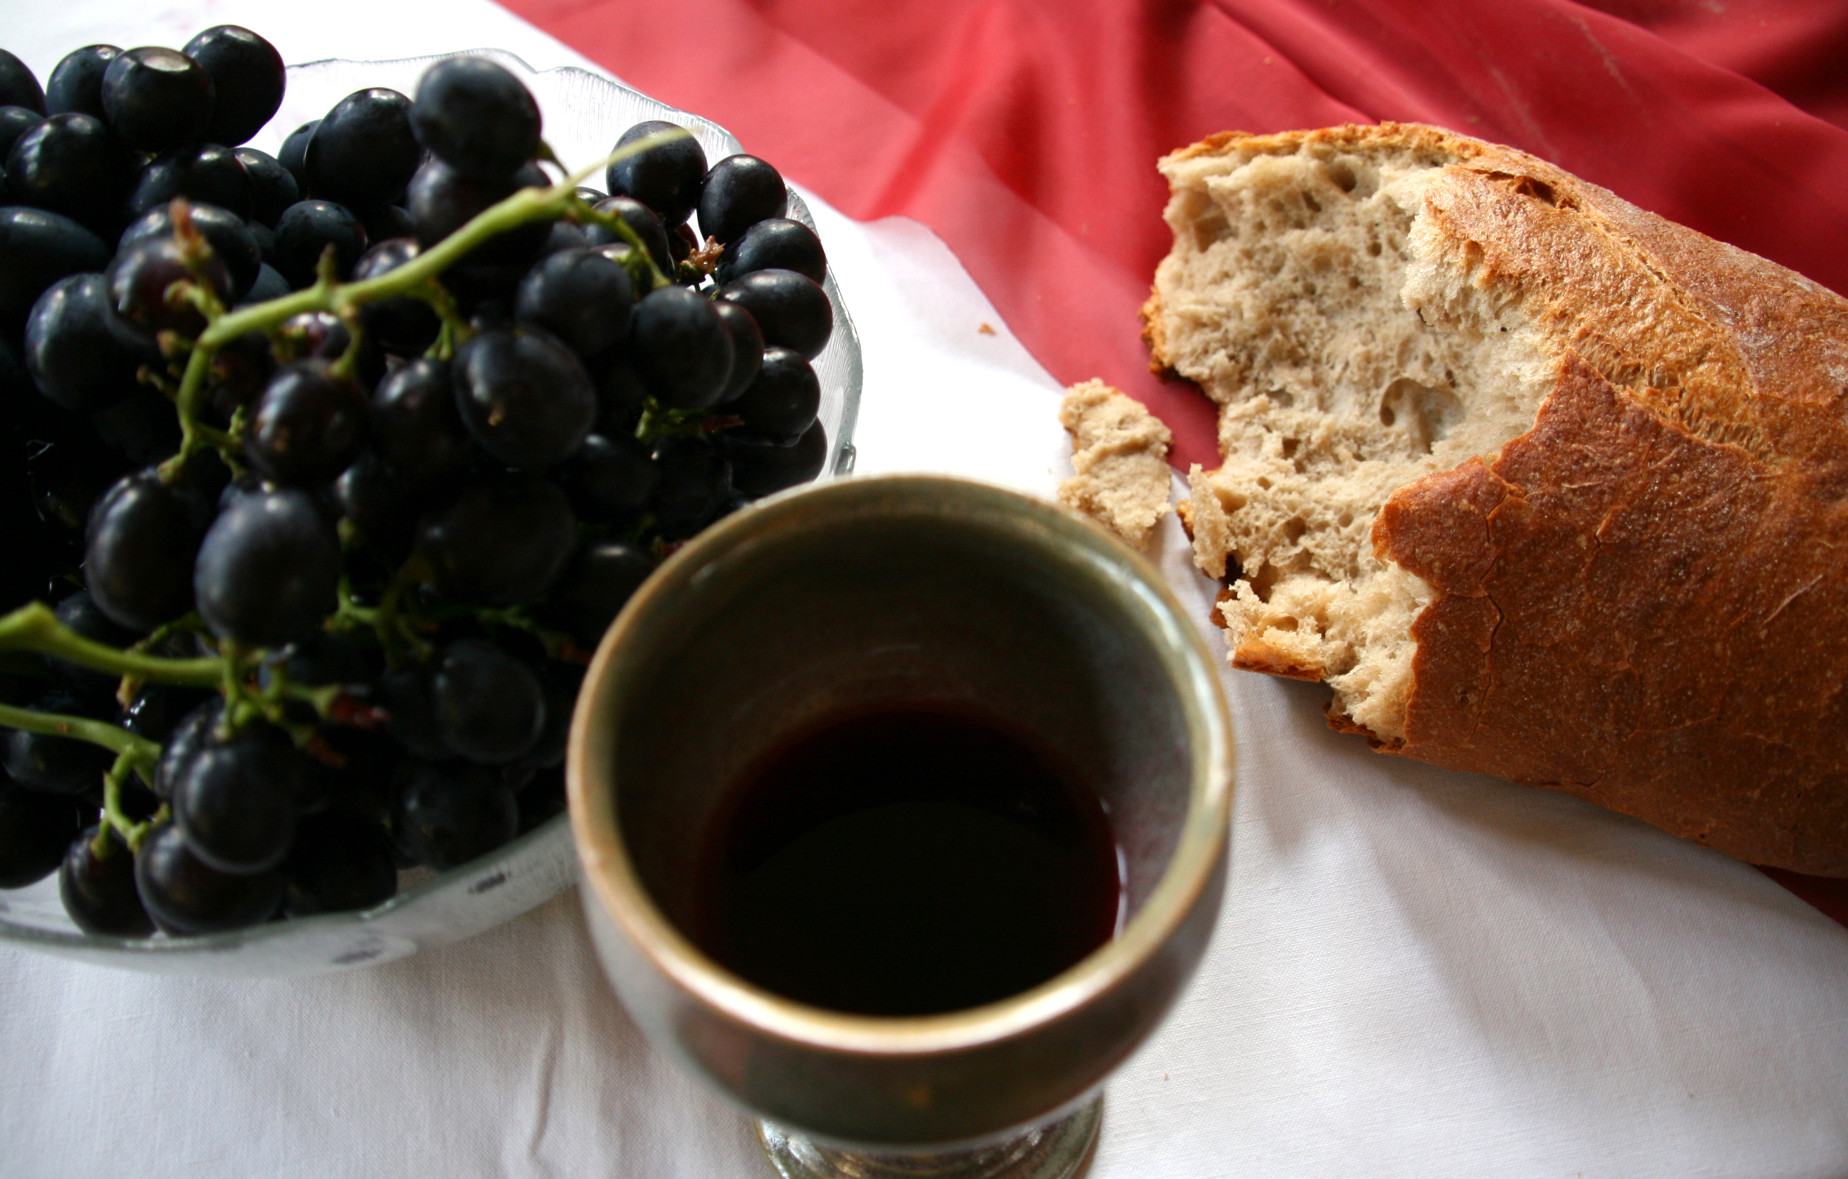 self-awareness, faith, repentance and the Lord's Supper